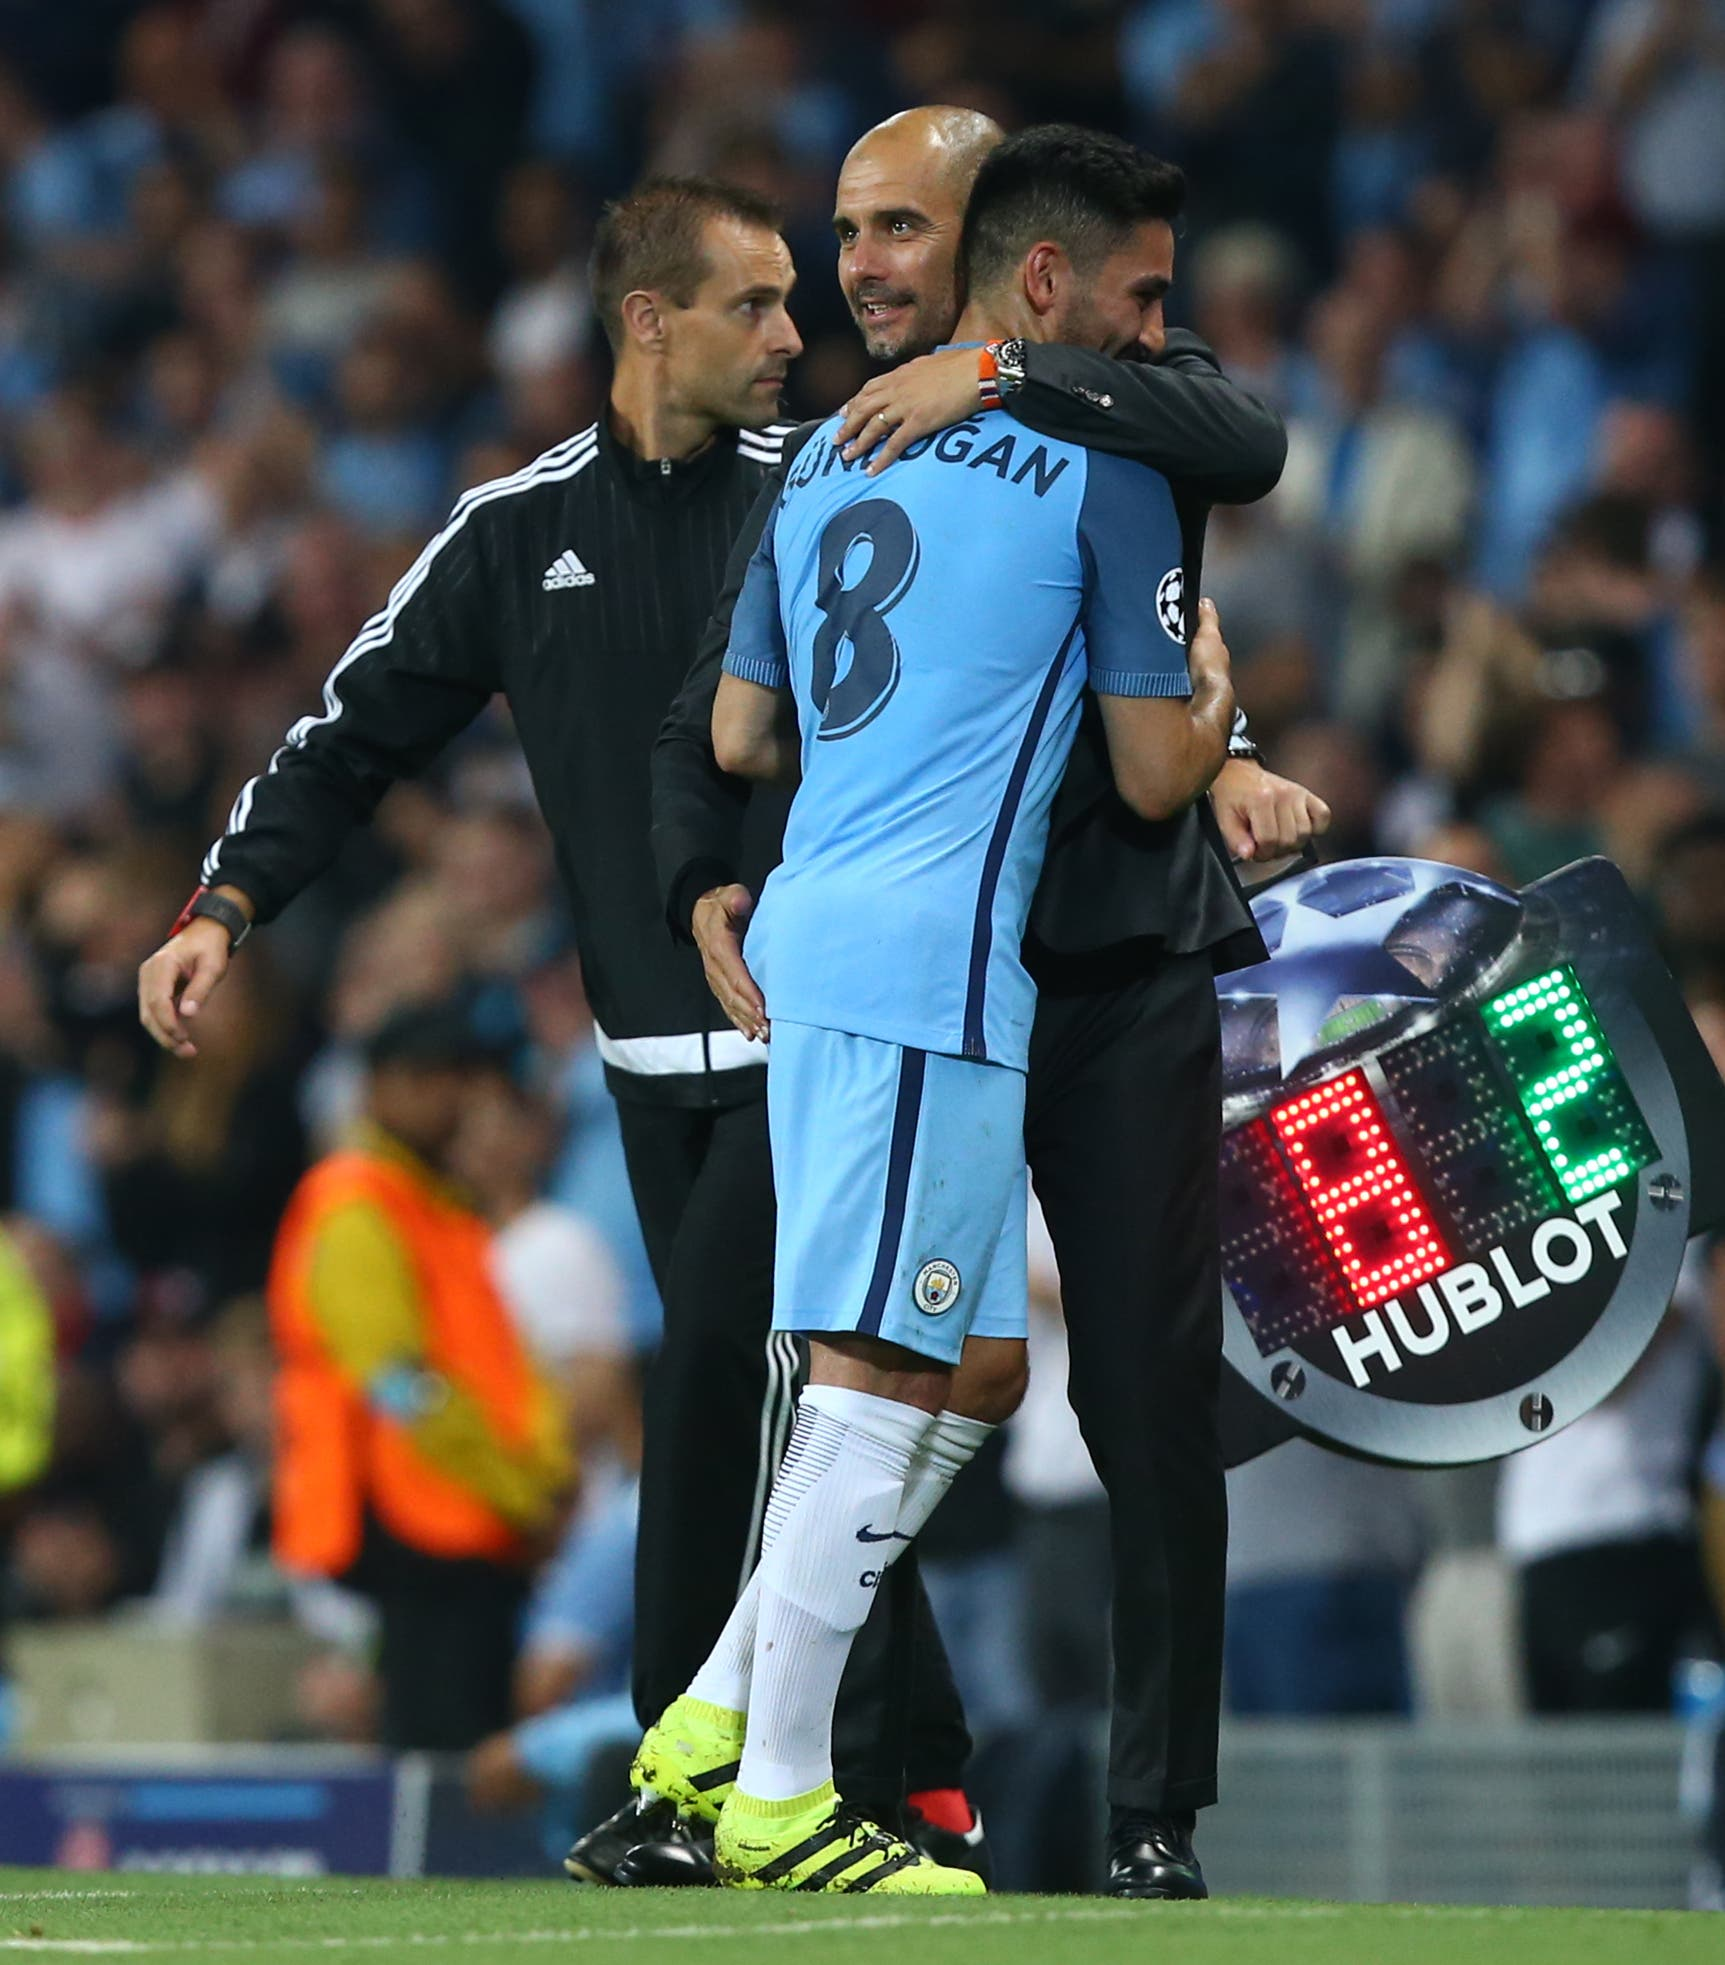 Manchester City's manager Pep Guardiola, centre, hugs his player Manchester City's Ilkay Gundogan as he is substituted during the Champions League group C soccer match at the Etihad Stadium between Manchester City and Borussia Moenchengladbach in Manchester, England, Wednesday, Sept. 14, 2016. The match was rearranged from Tuesday due to adverse weather conditions in Manchester. (AP